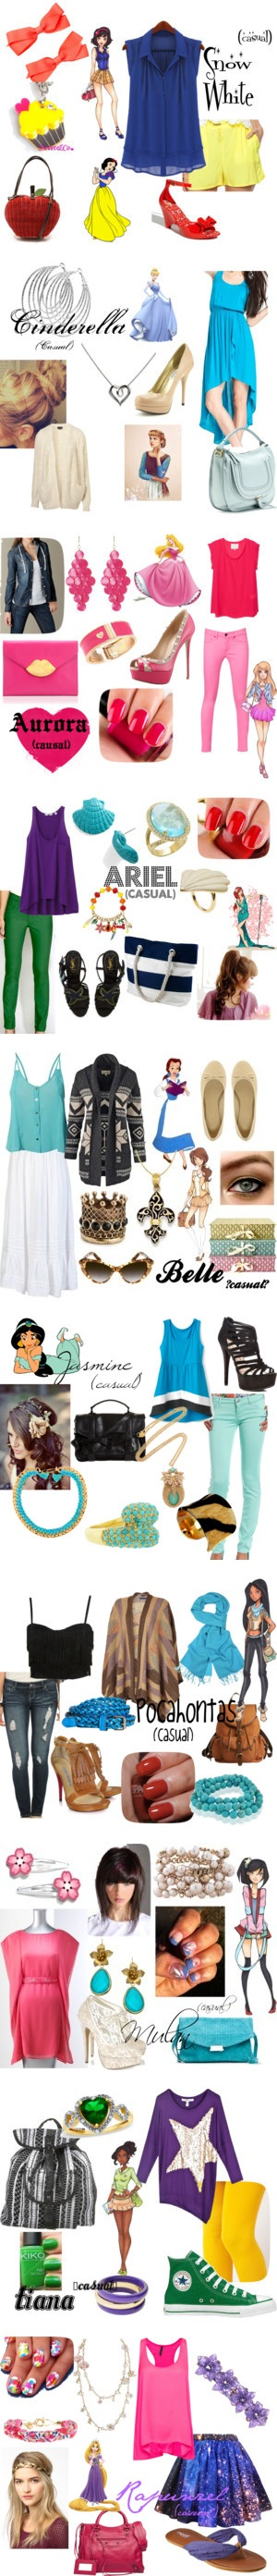 """Princess go Casual"" by dawn-falls on Polyvore"